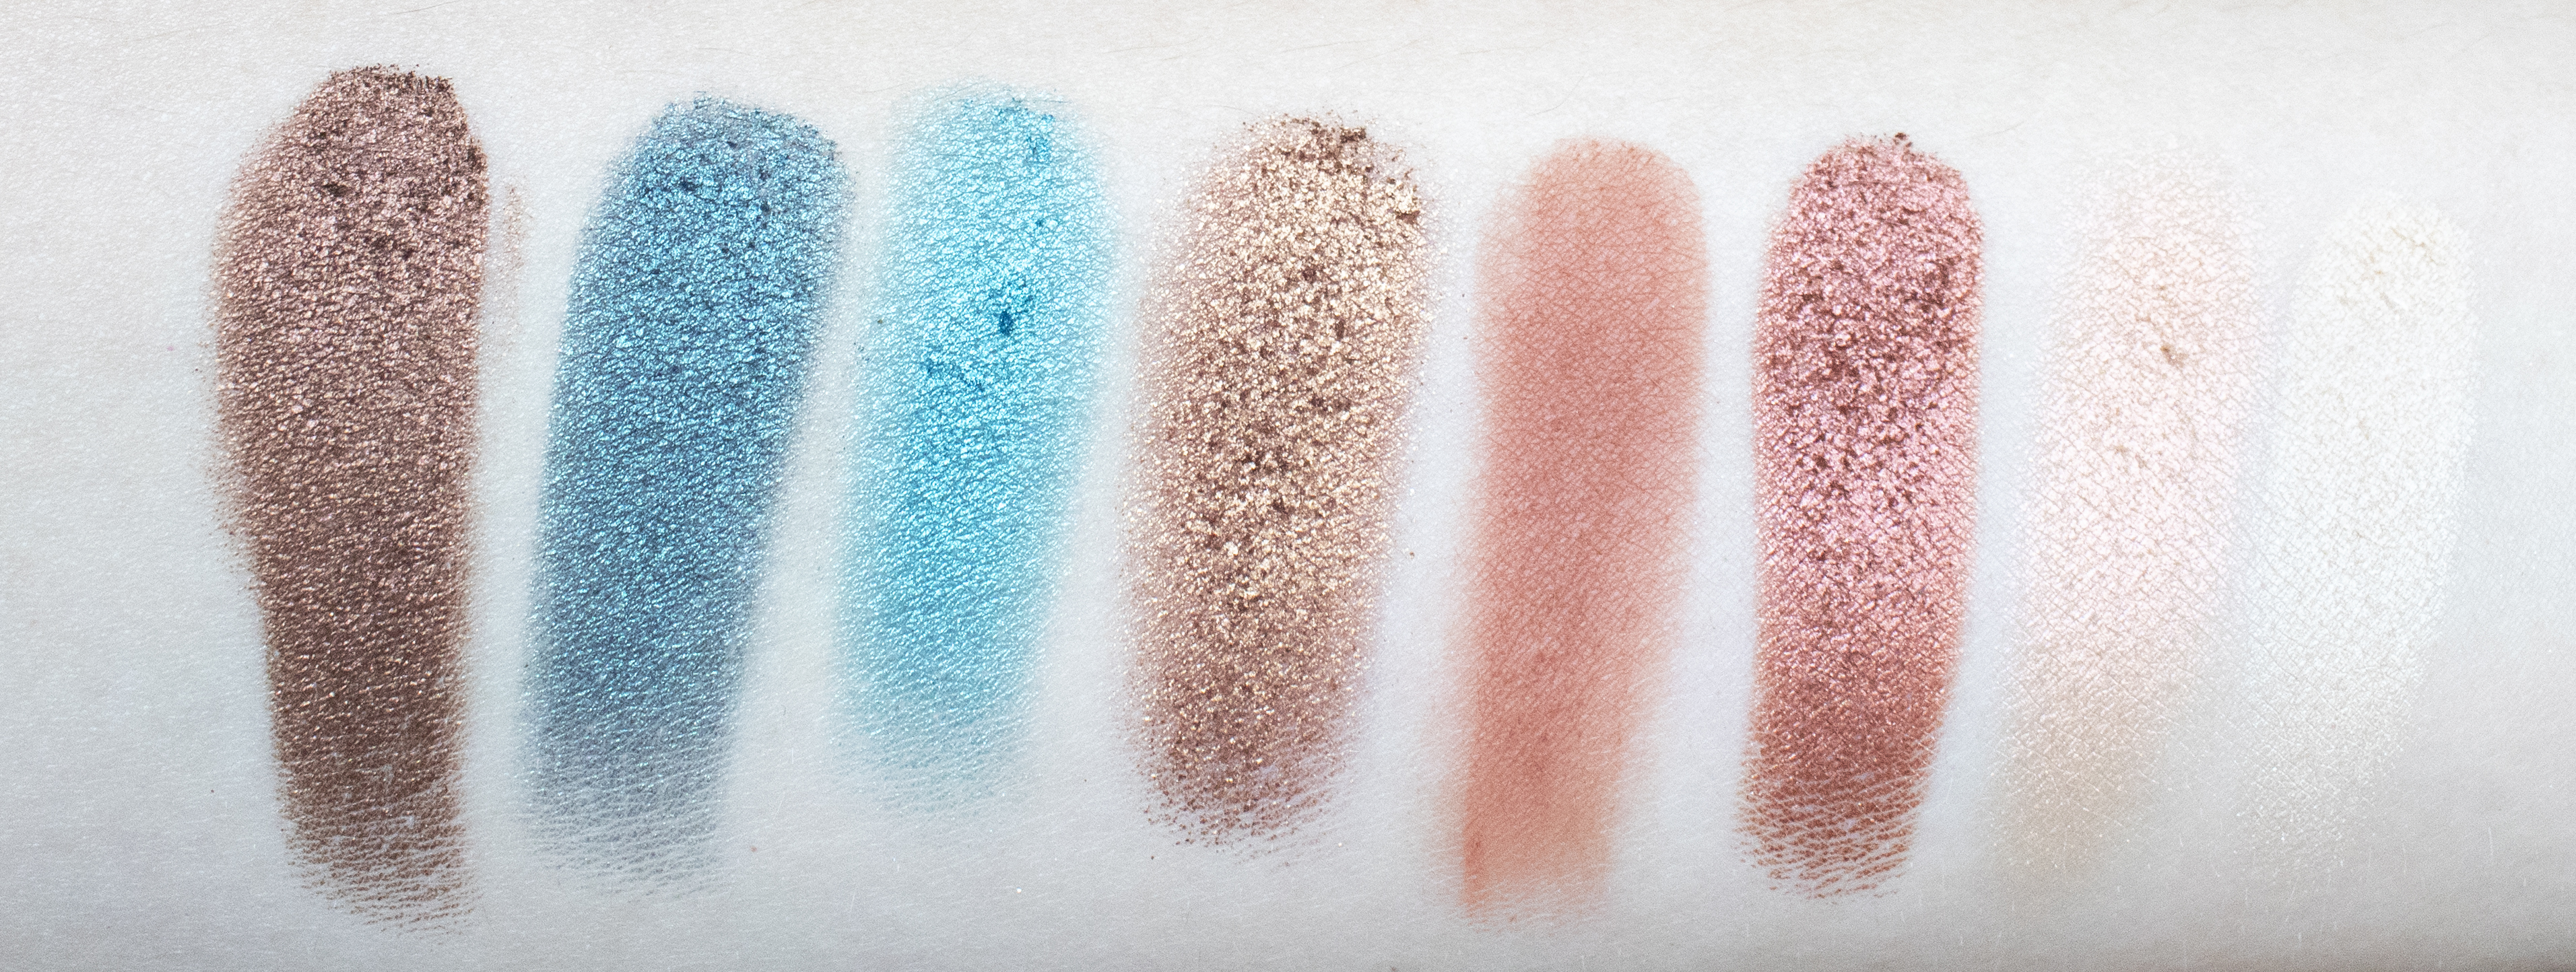 beached eyeshadow palette swatches